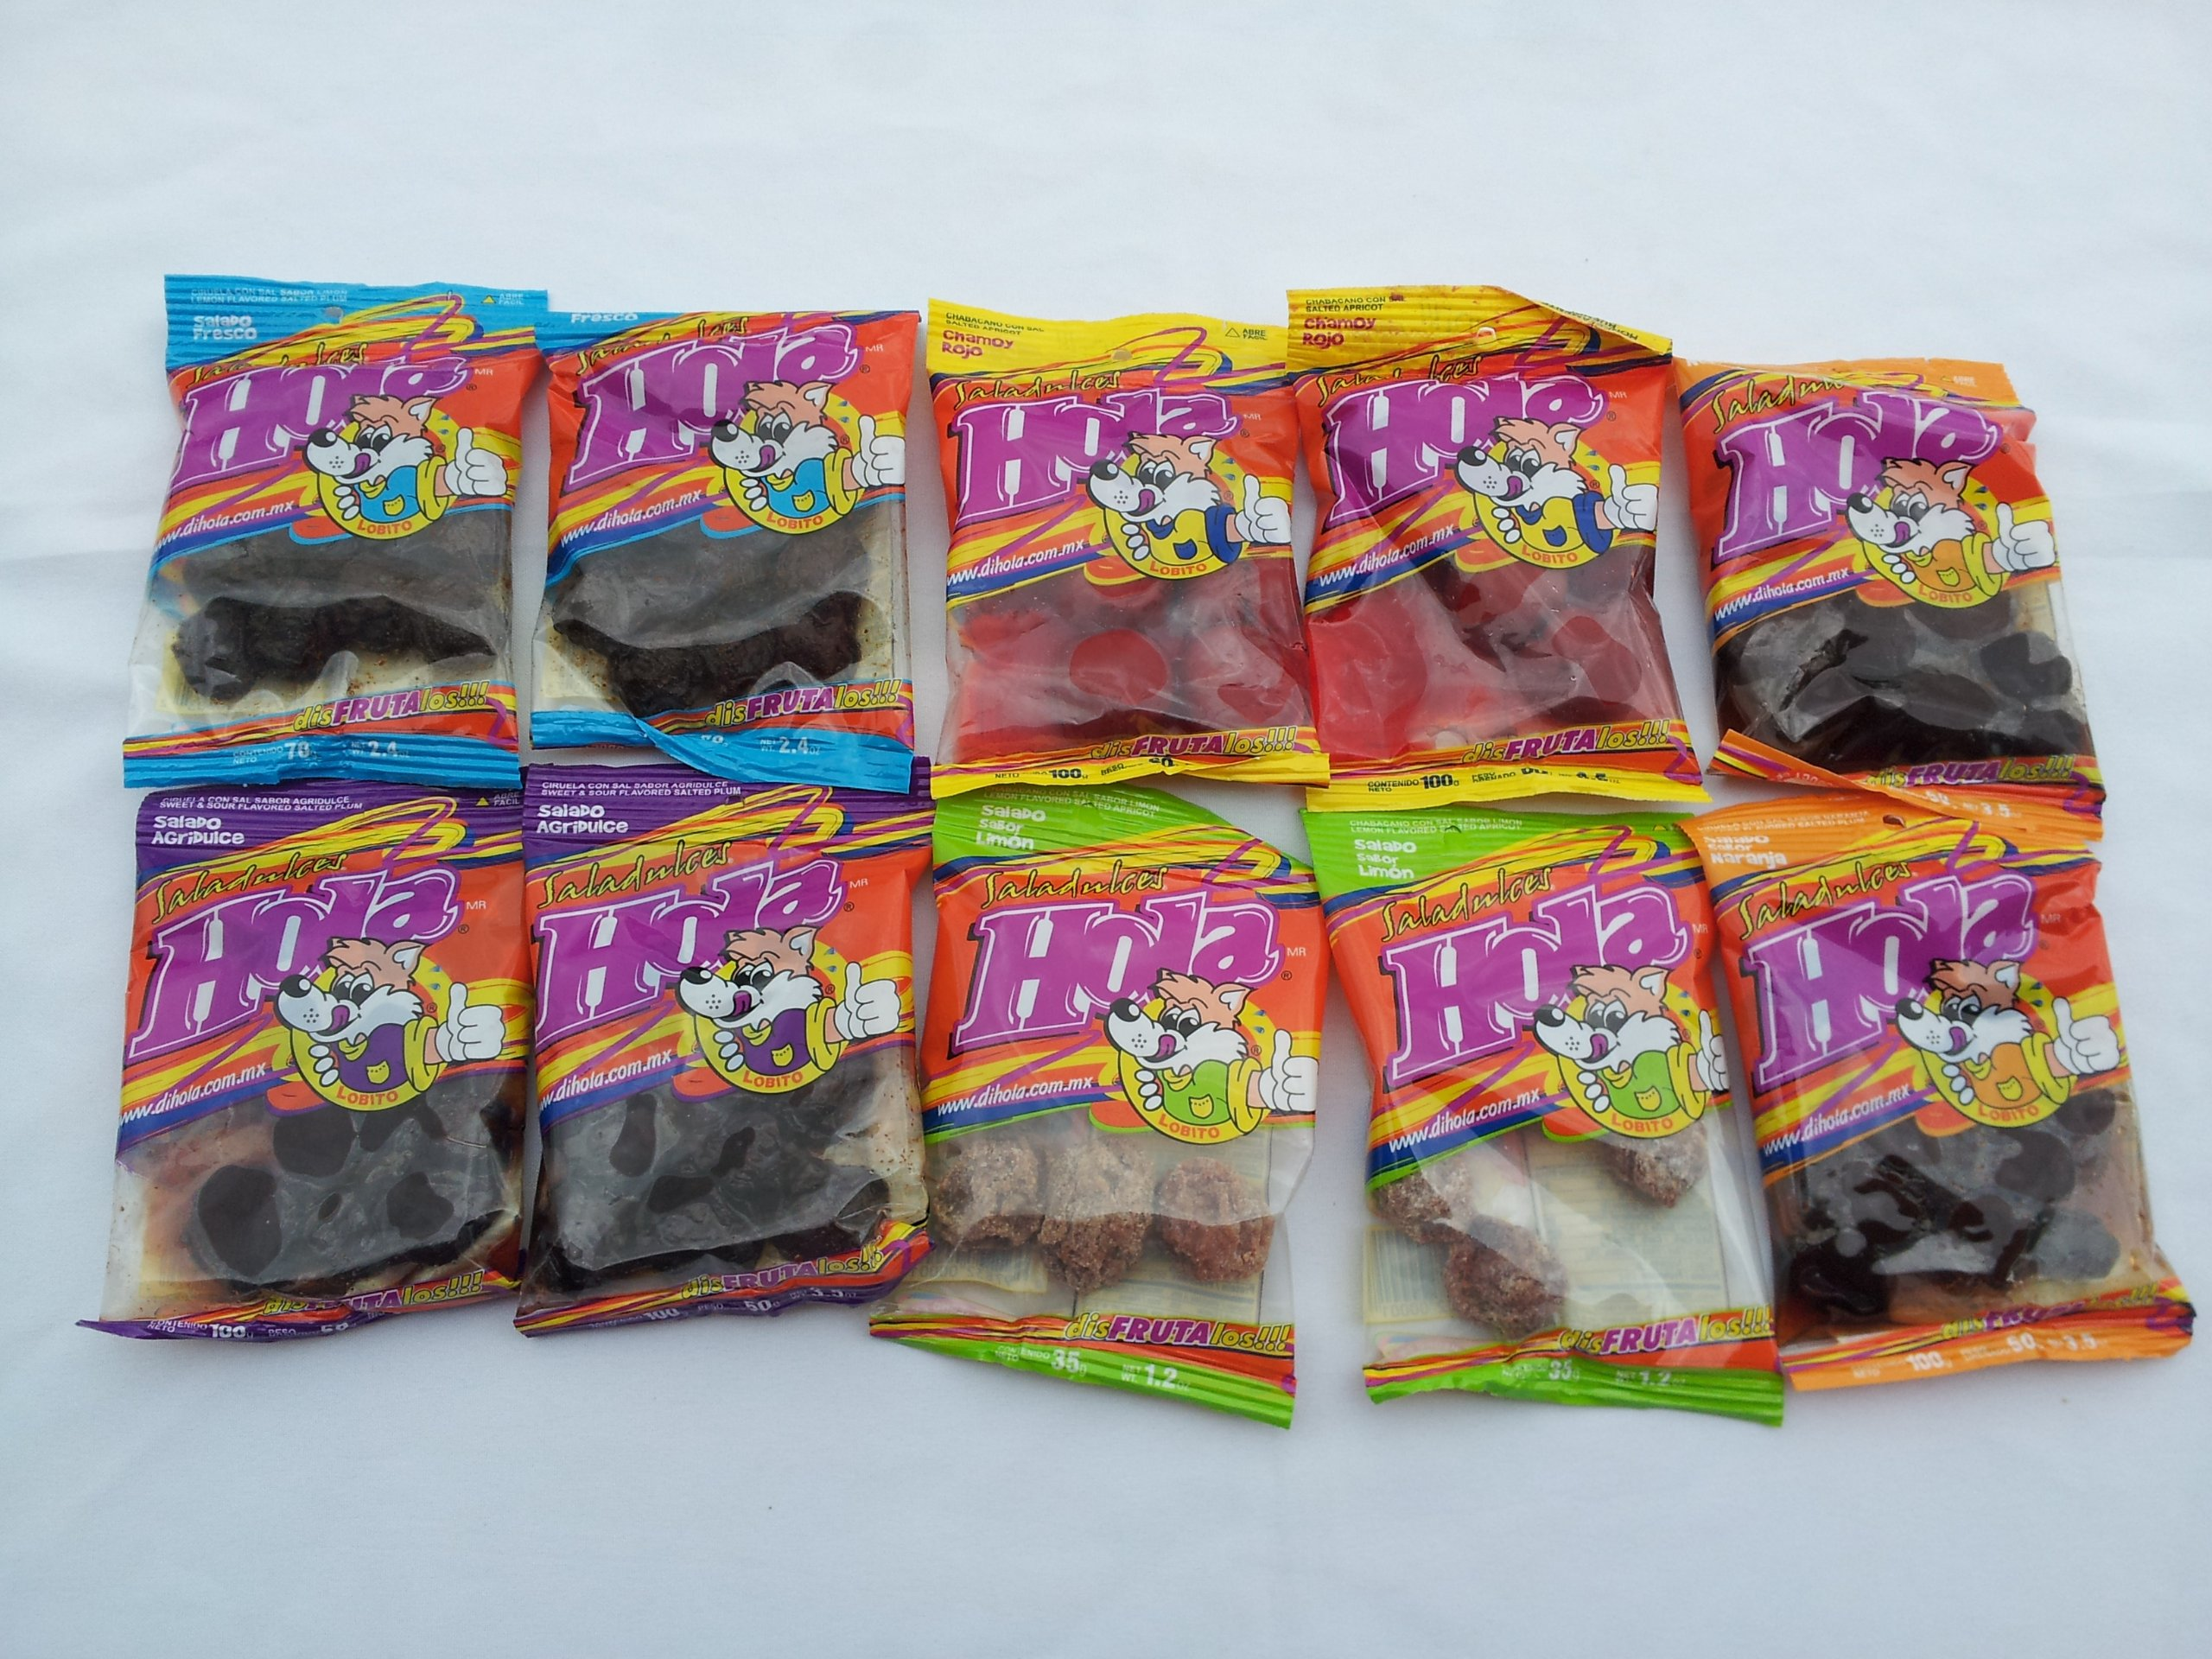 10pack Saladitos Mix - Saladulces Hola Lobito - Flavored Salted Apricot